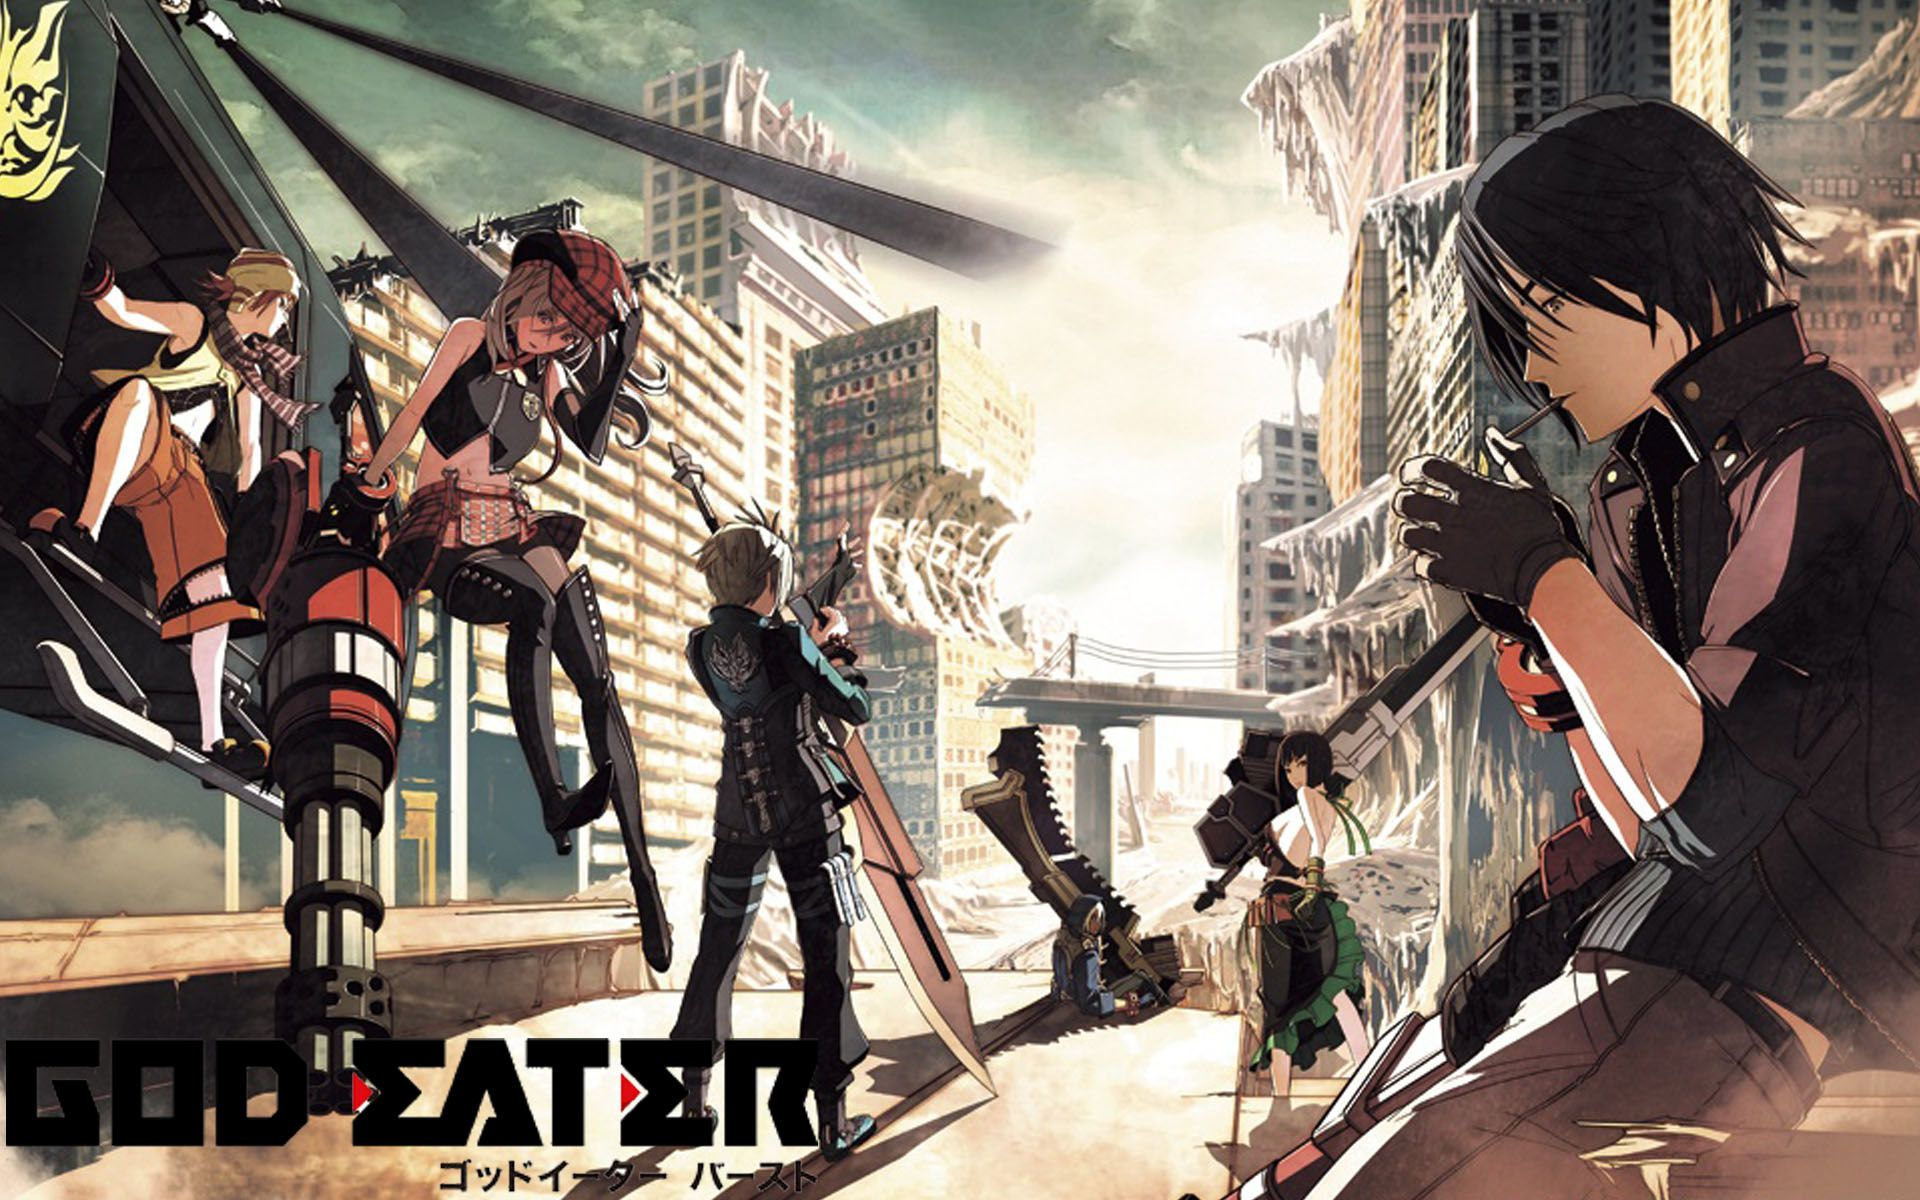 God Eater Wallpaper HD